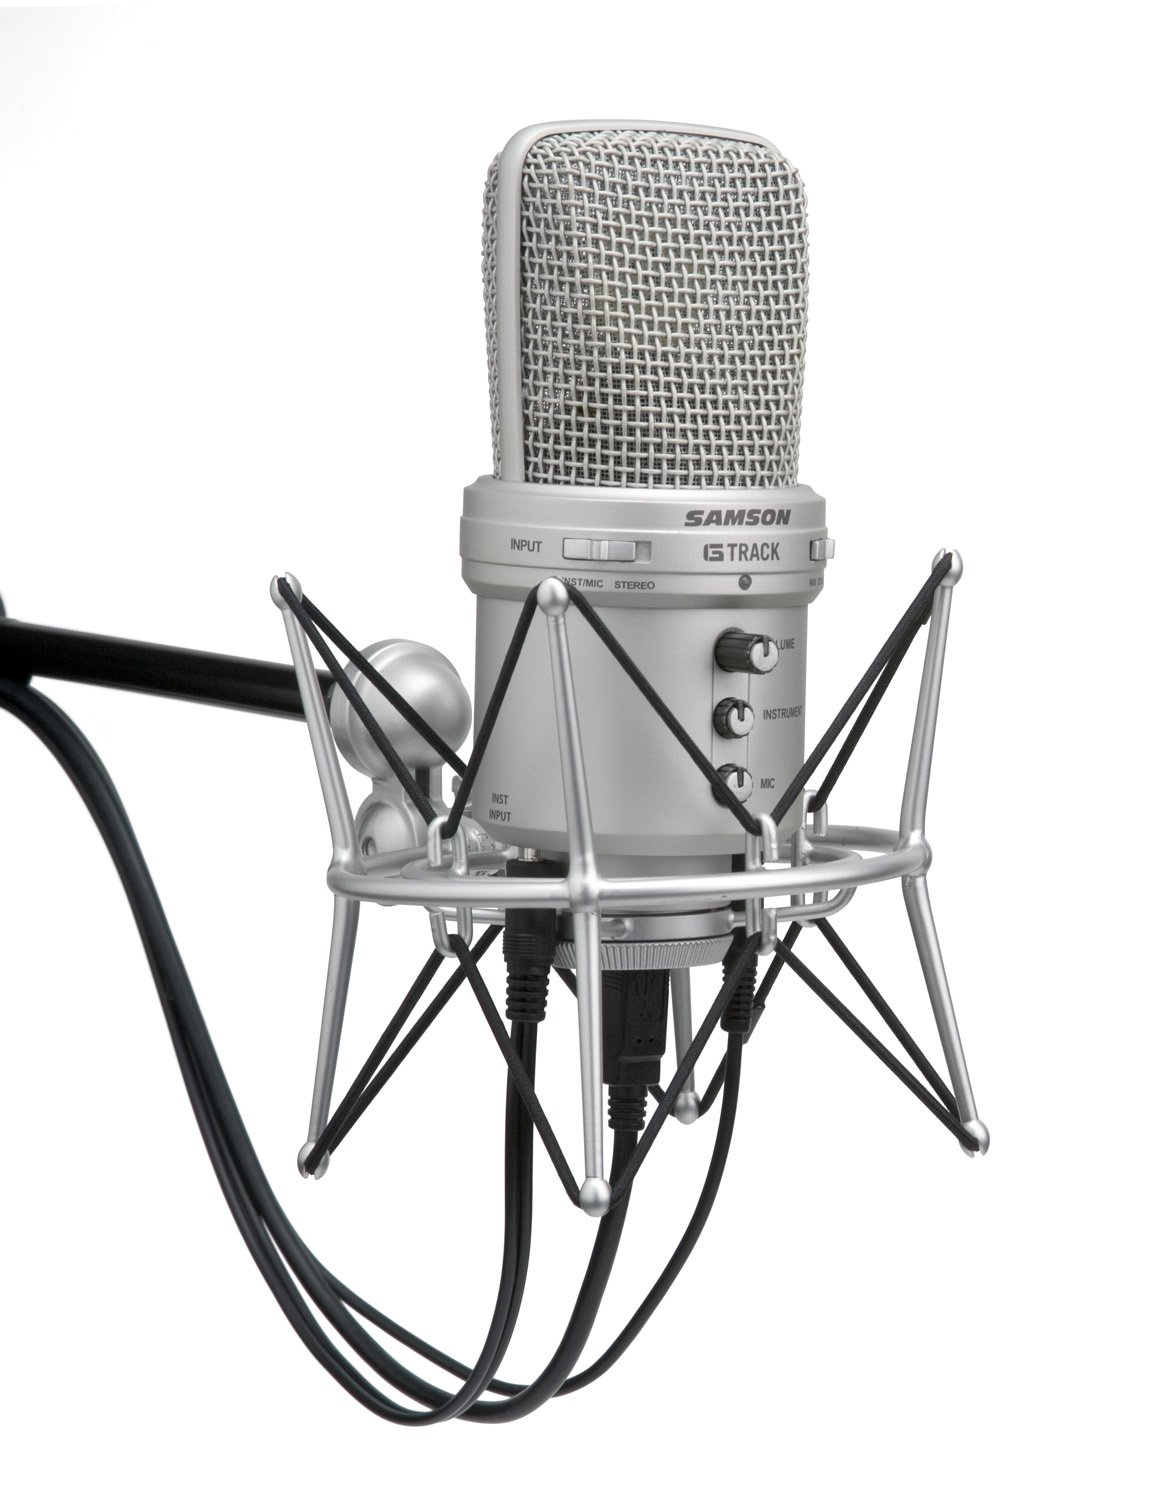 Samson G-Track USB Condenser Microphone with Audio Interface